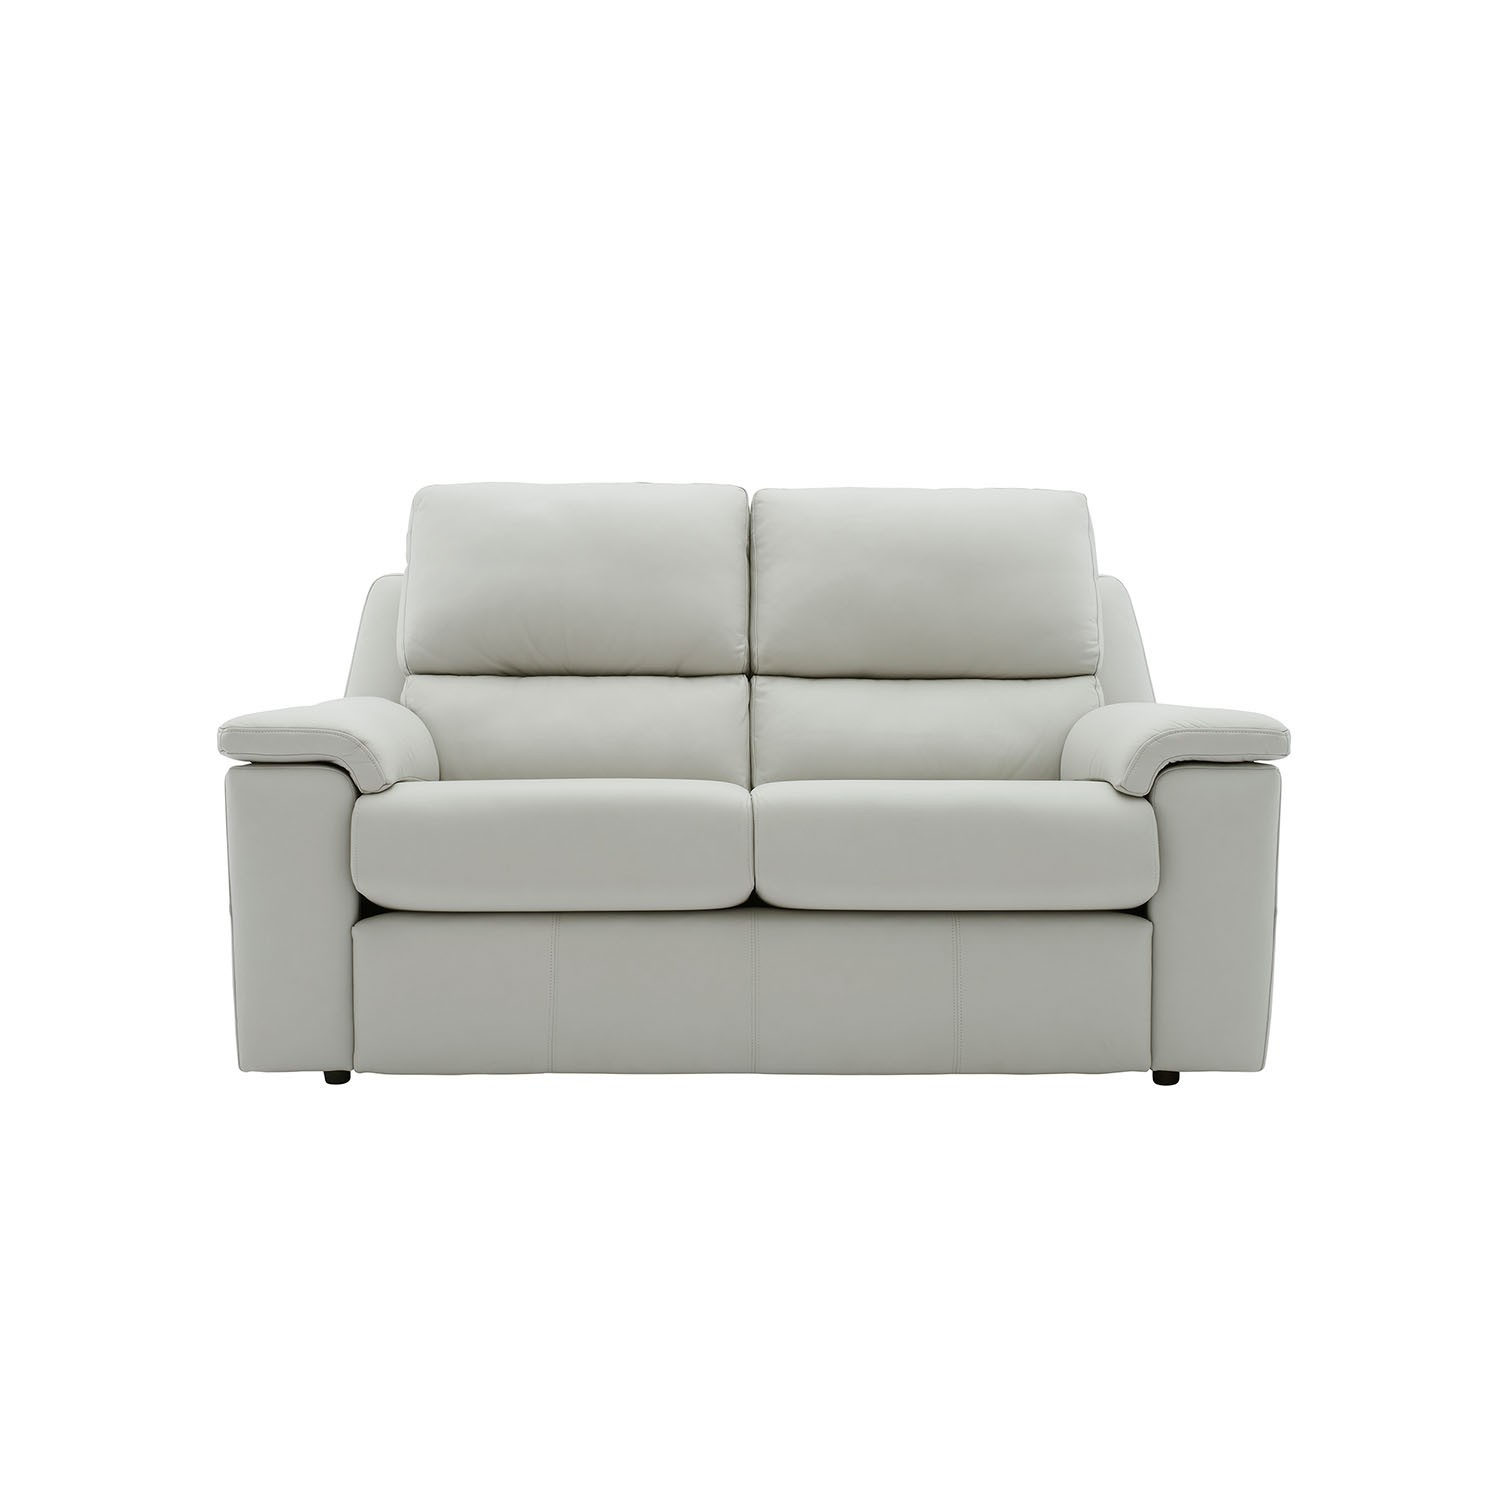 G Plan Taylor 2 Seater Power Recliner Leather Sofa